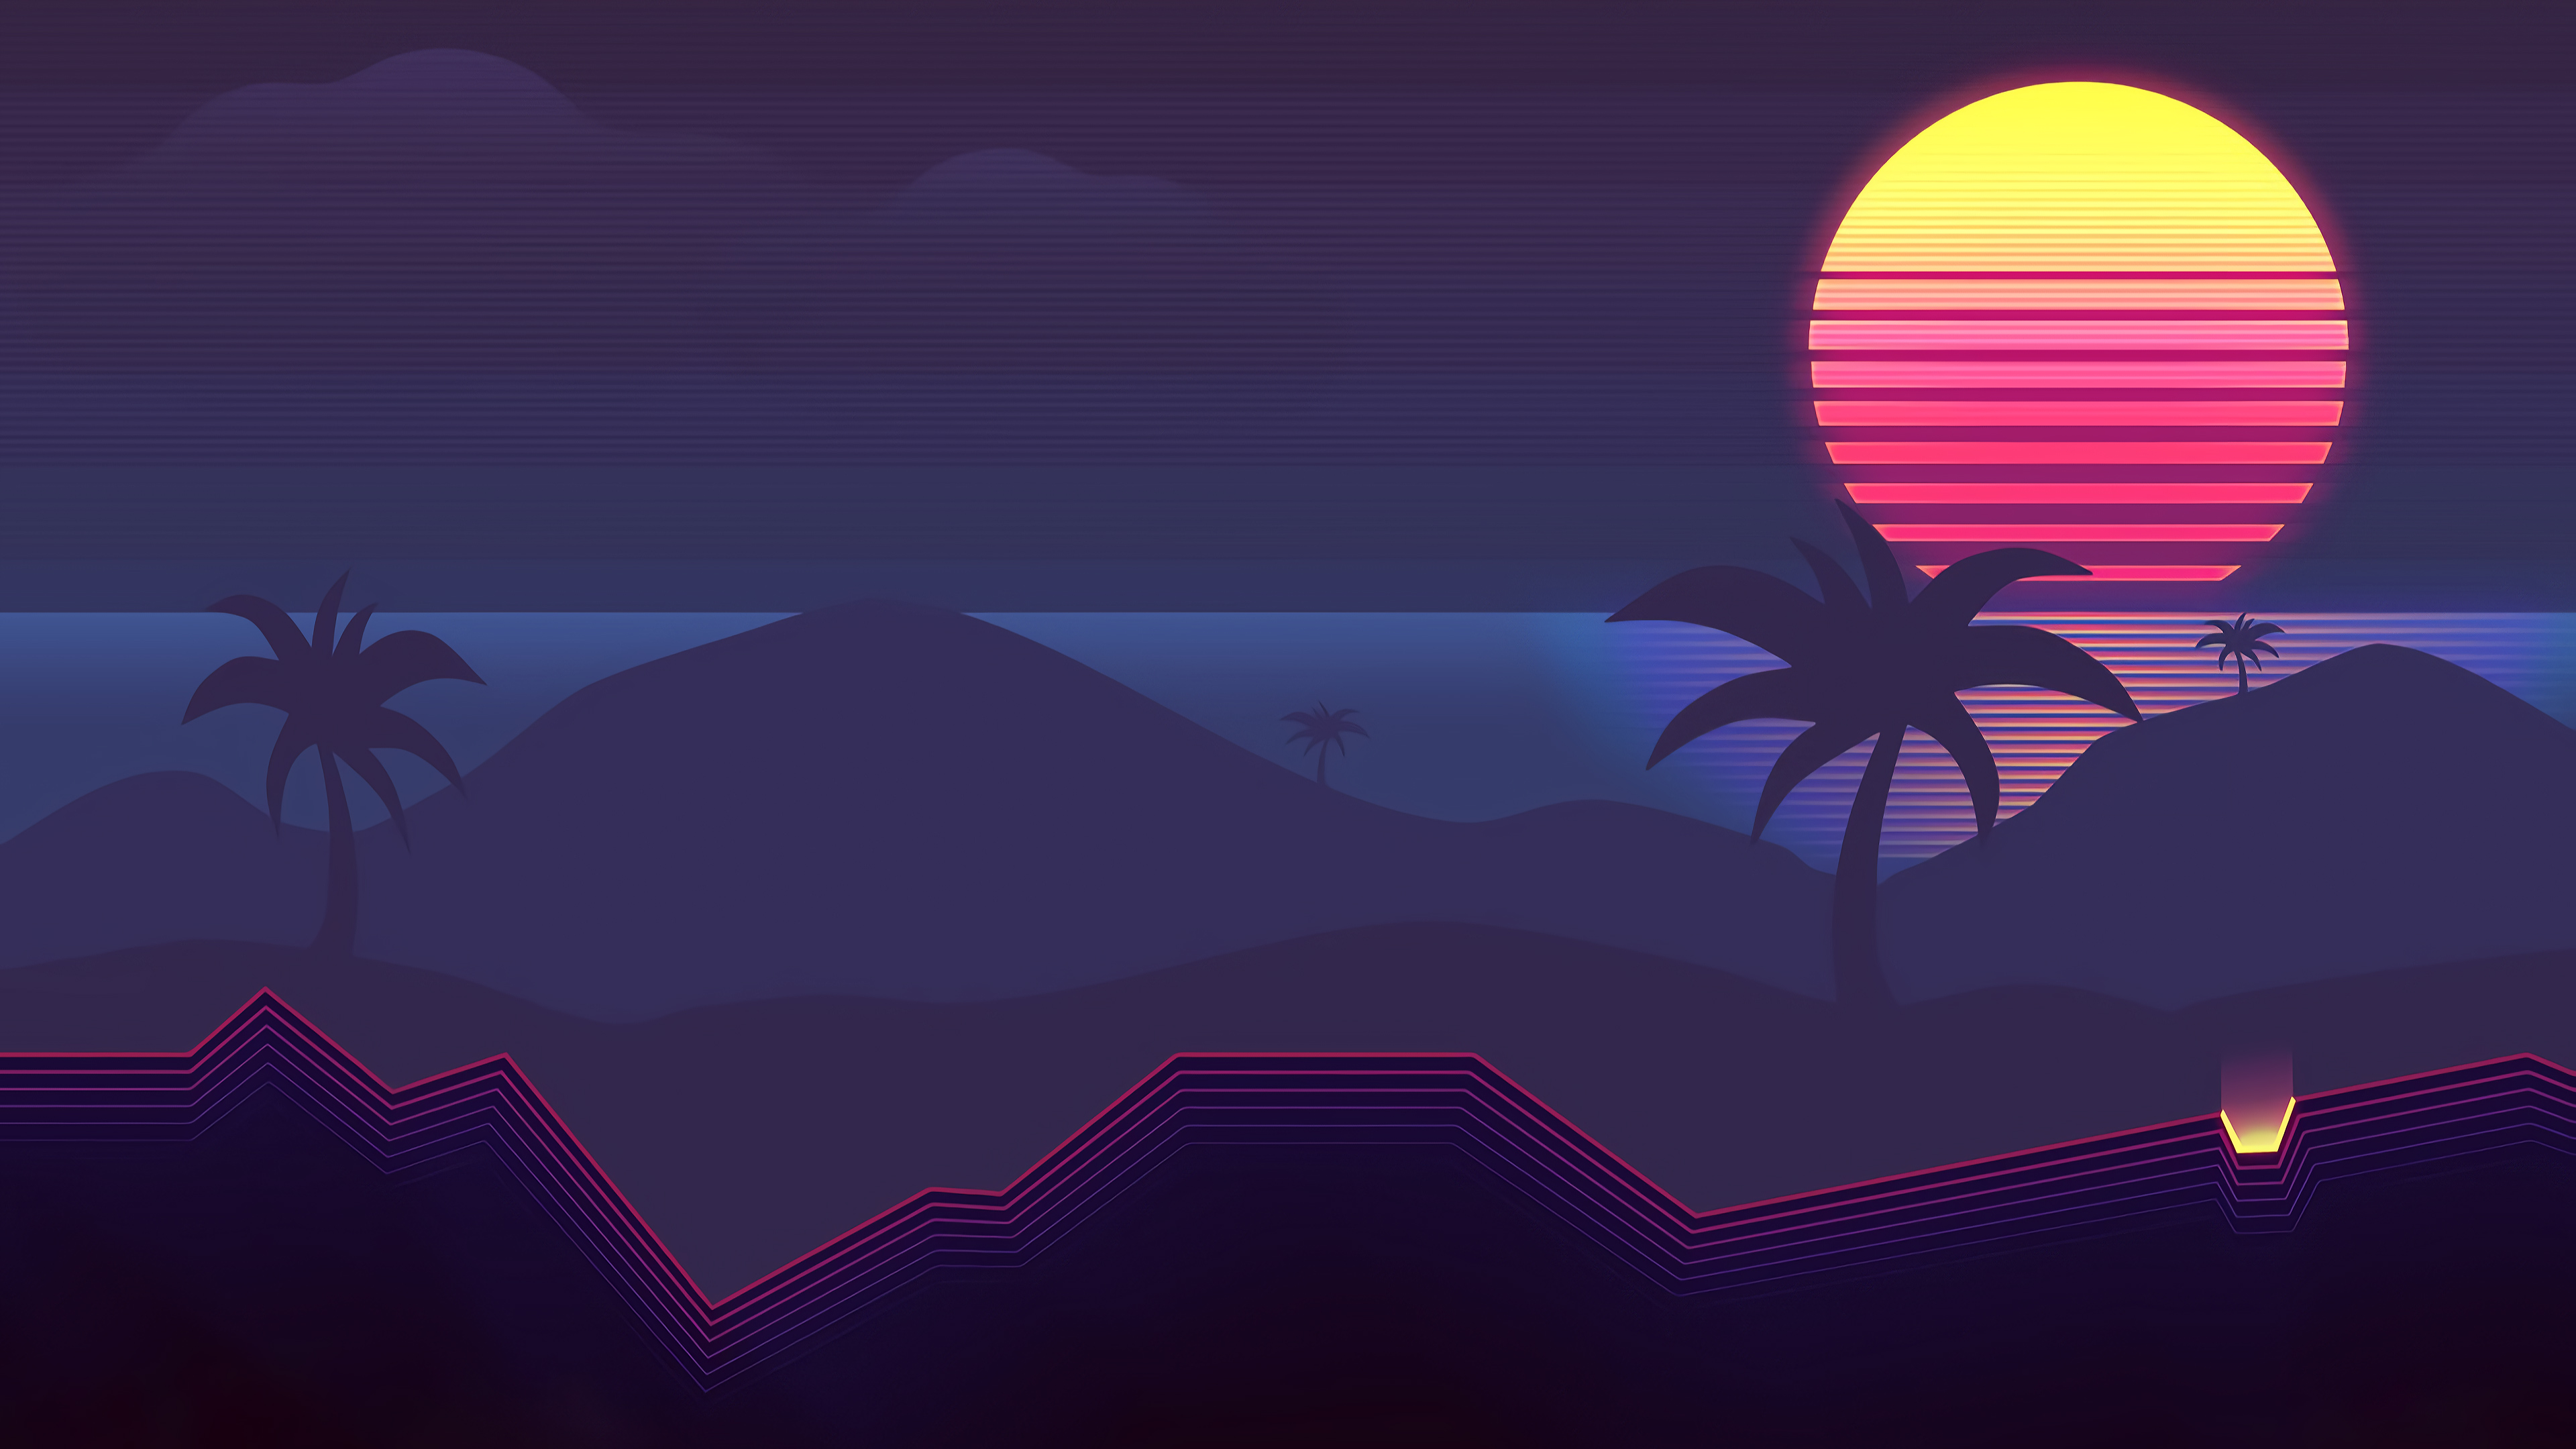 General 3840x2160 digital digital art artwork landscape Sun sun rays sunset dusk dark evening water sea relfection trees palm trees neon neon lights mountains minimalism vaporwave Retrowave synthwave 1980s 80s